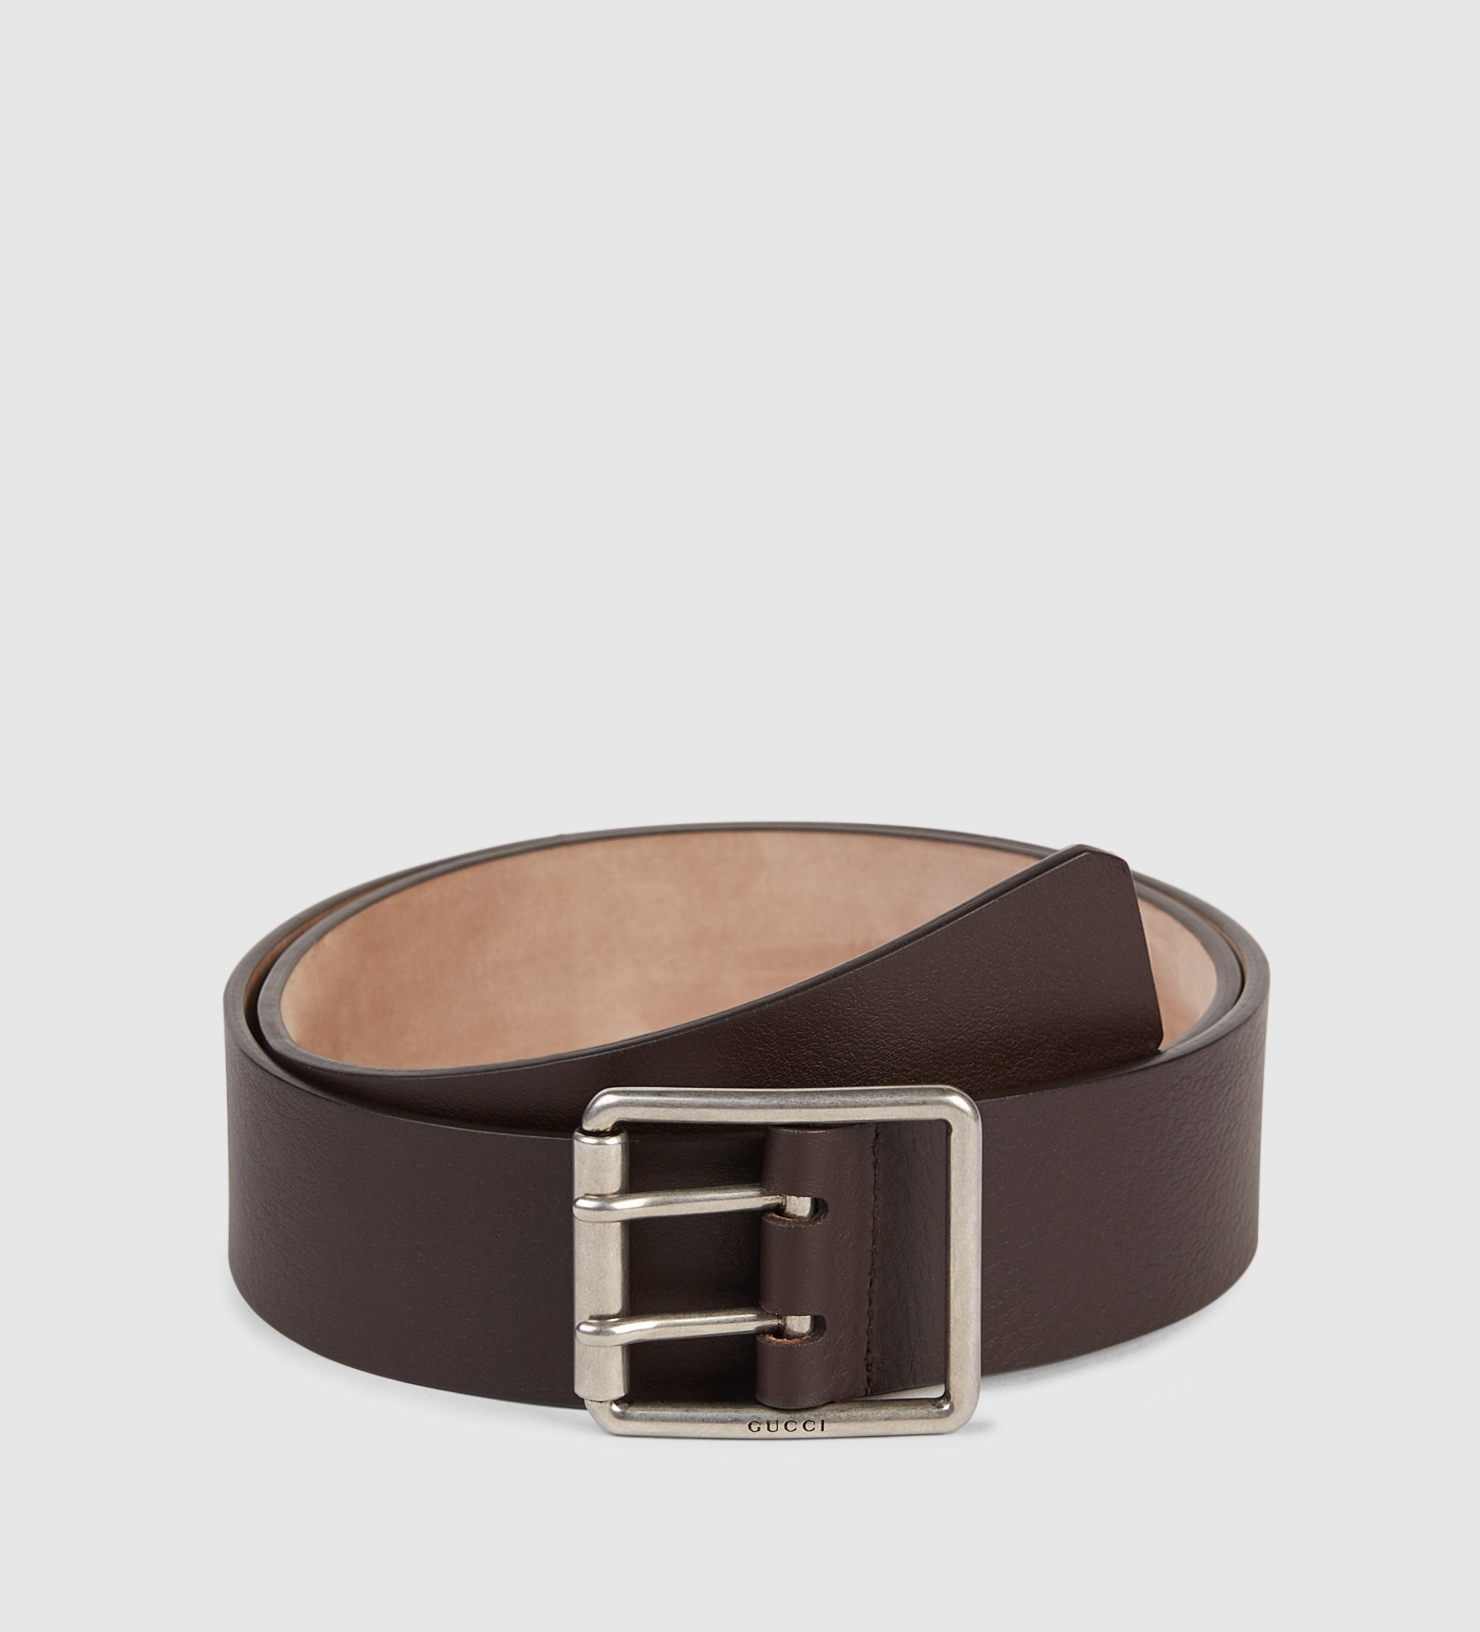 gucci leather belt with prong square buckle in